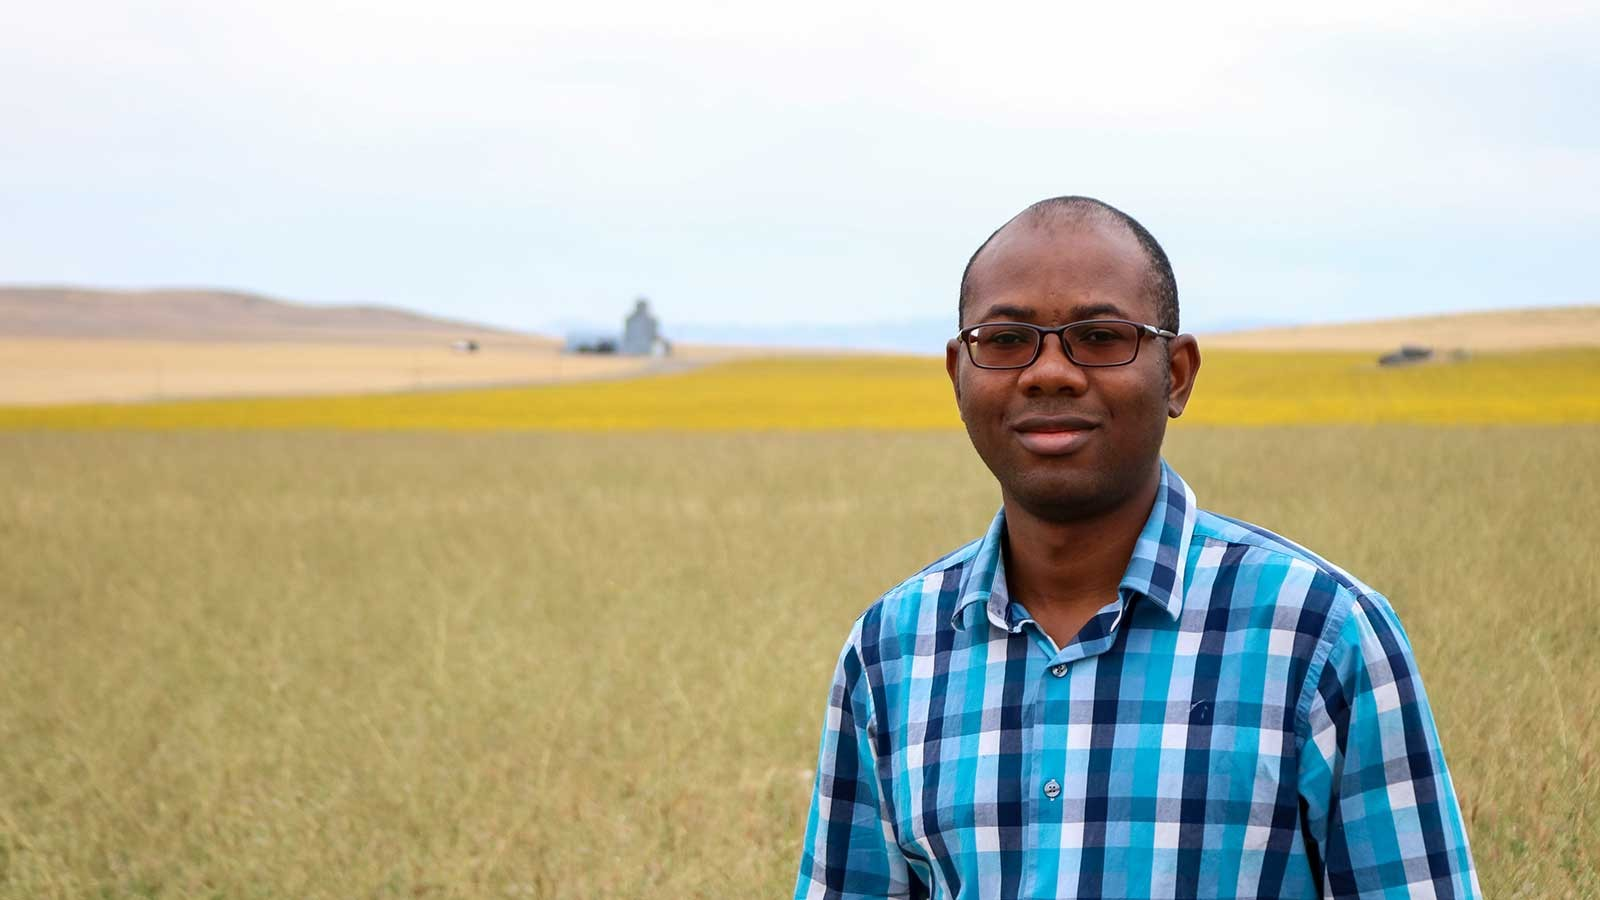 Idowu Atoloye poses for a photo in a field.